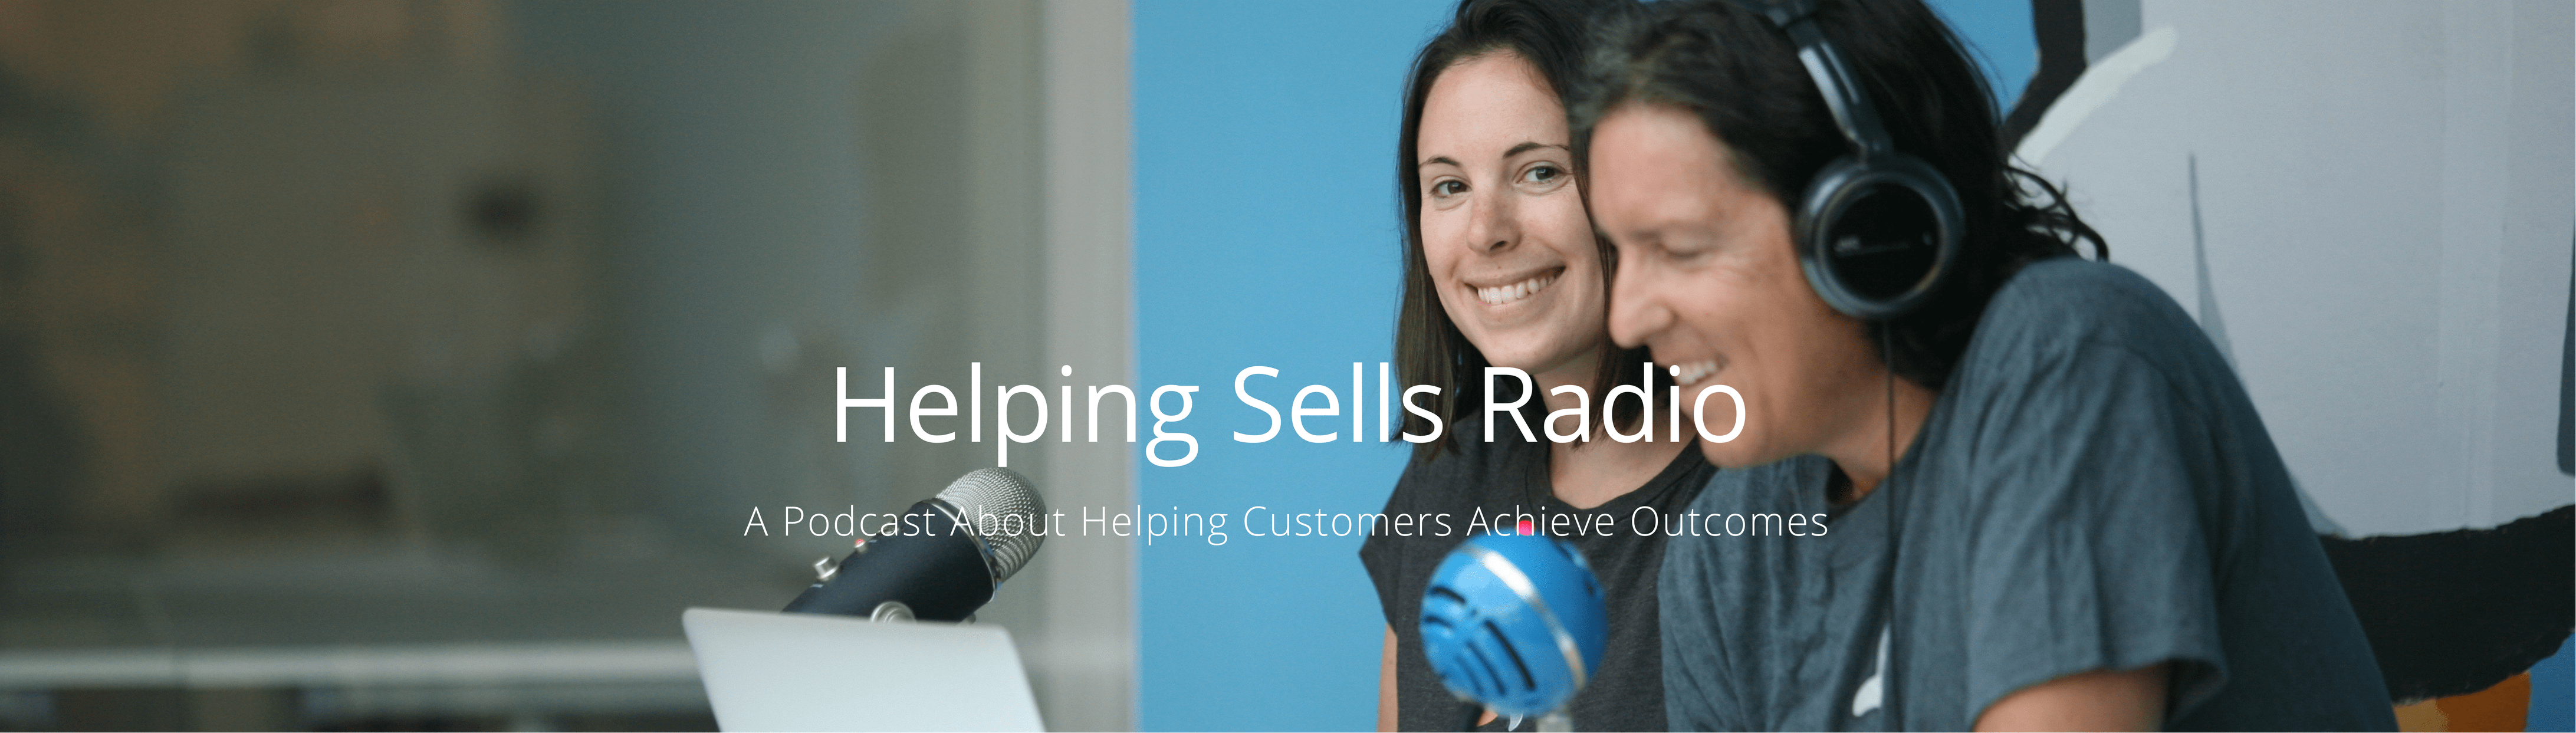 Helping Sells Radio